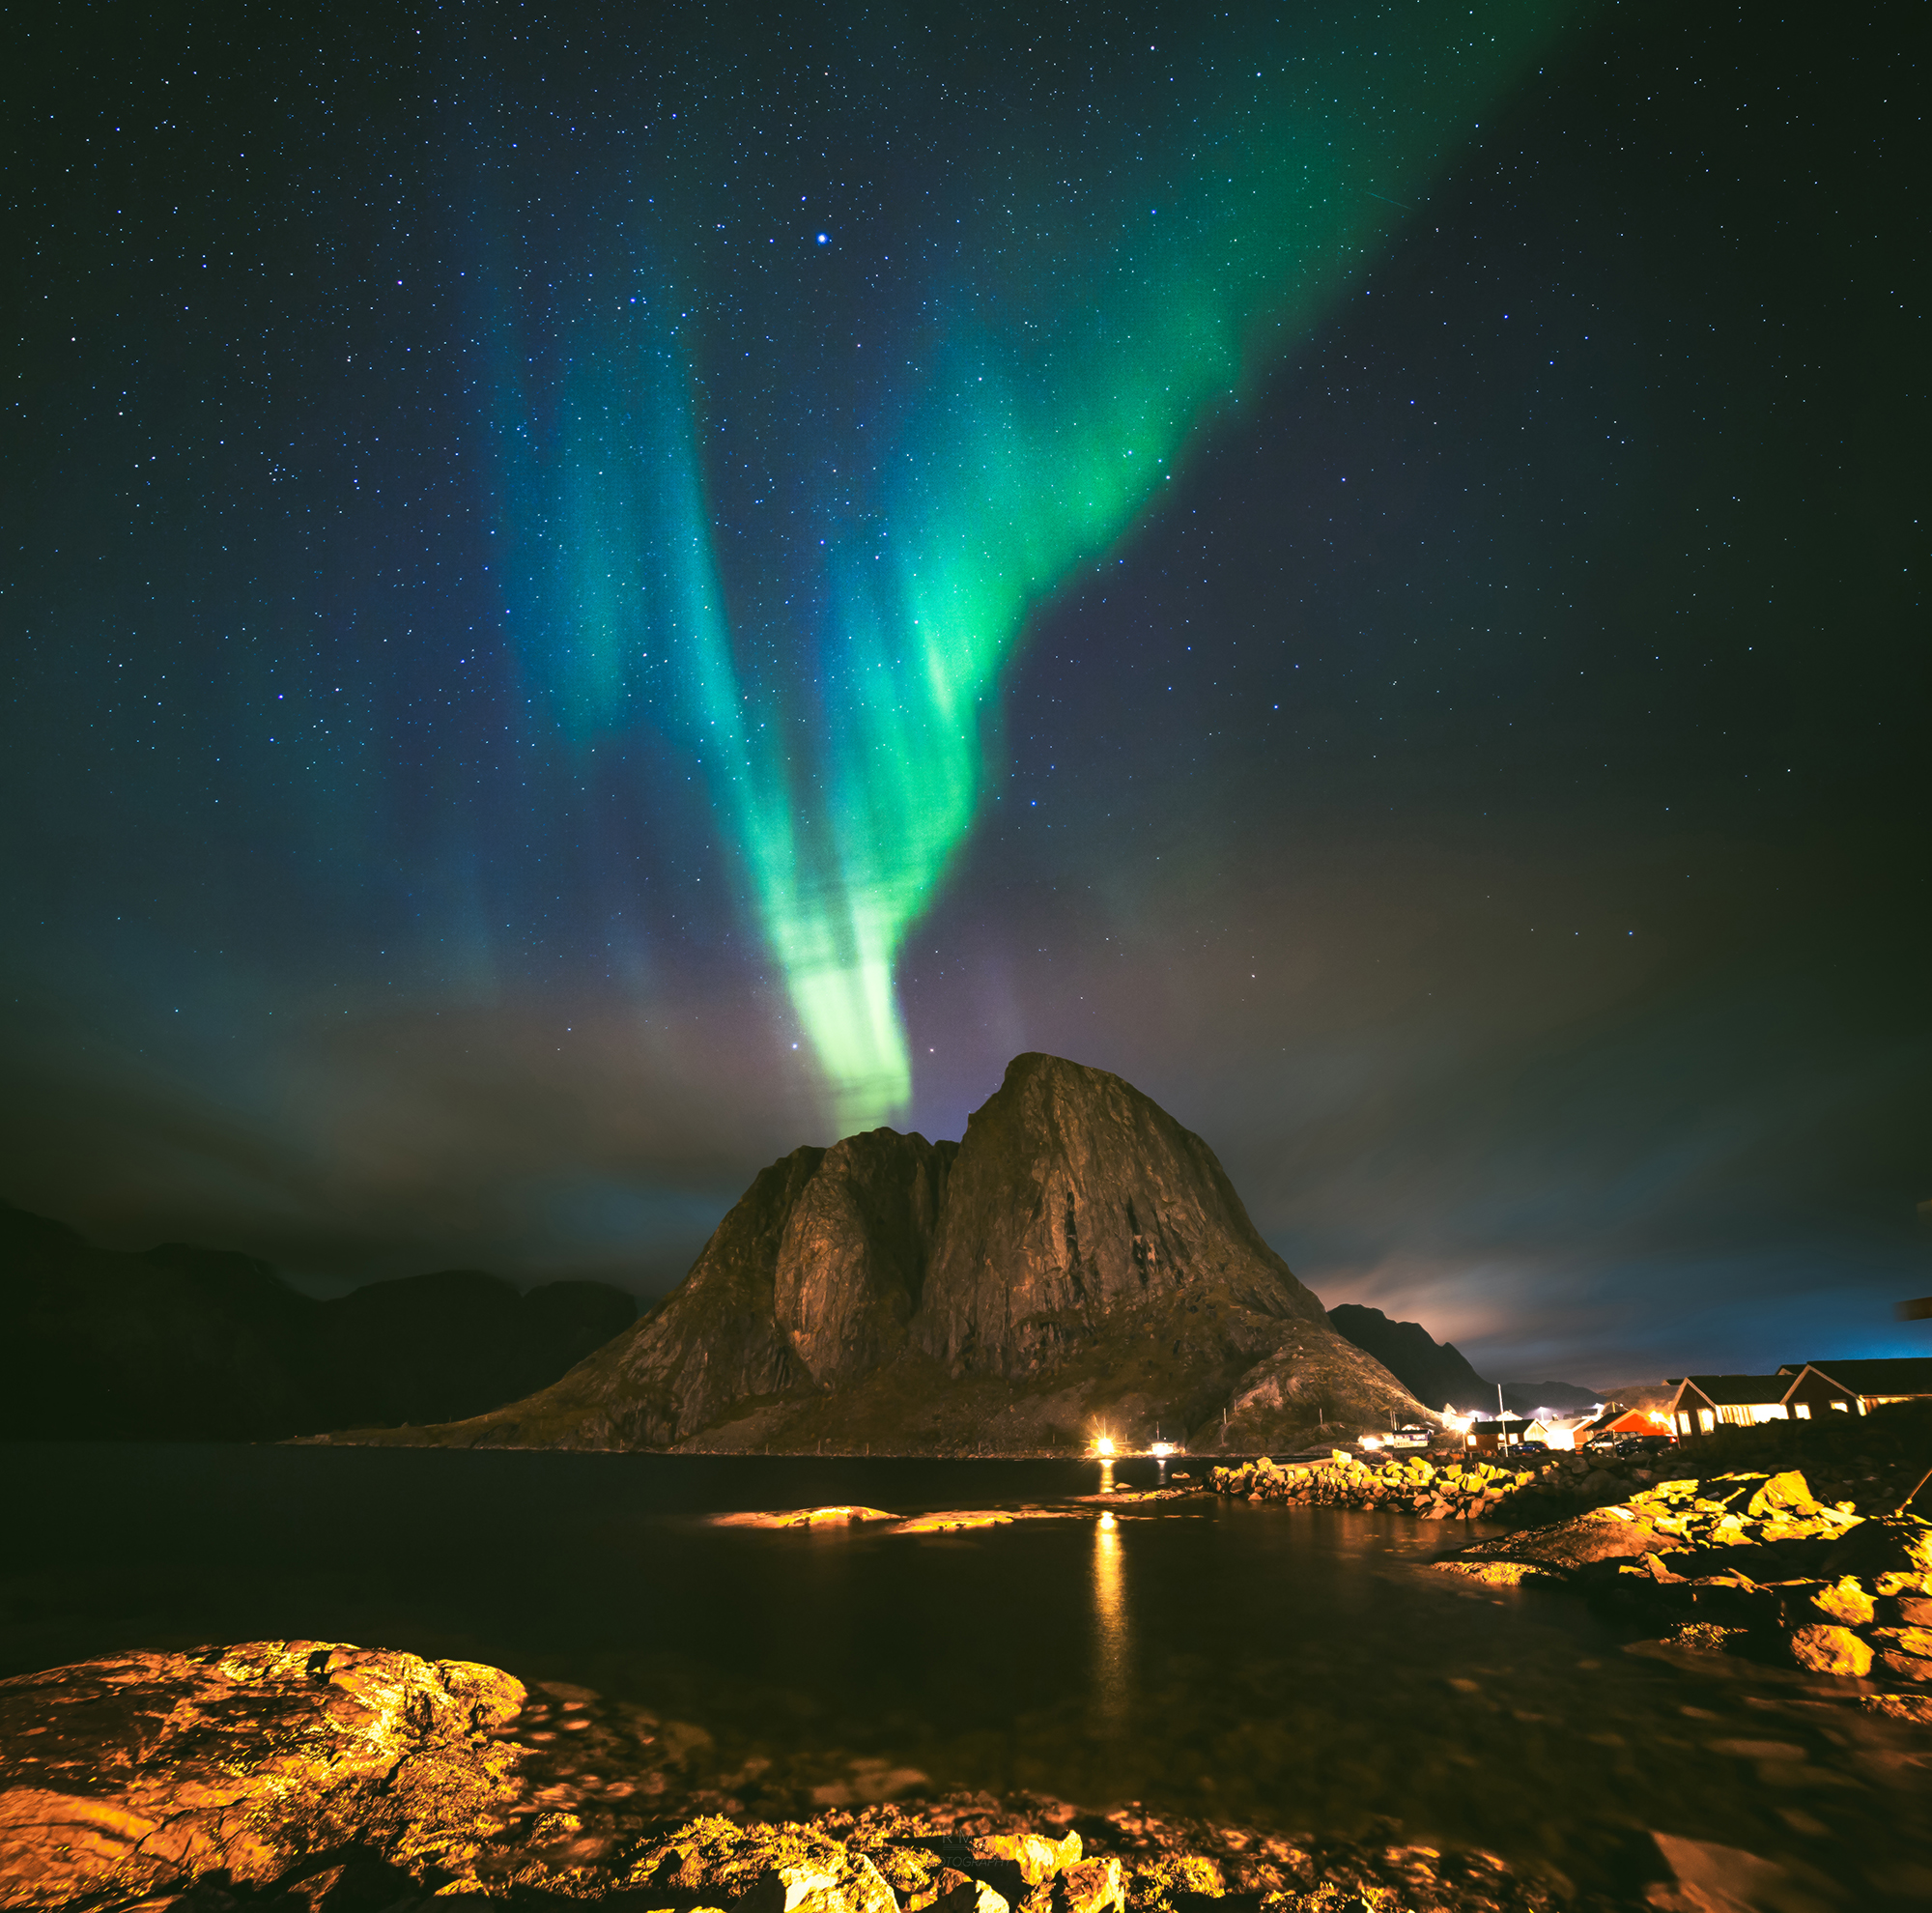 During my whole stay in Lofoten in October it was raining all the time, but luckuly, in the middle of the night, there was a short window with a clear sky and a nice Aurora! Never give up on photography!